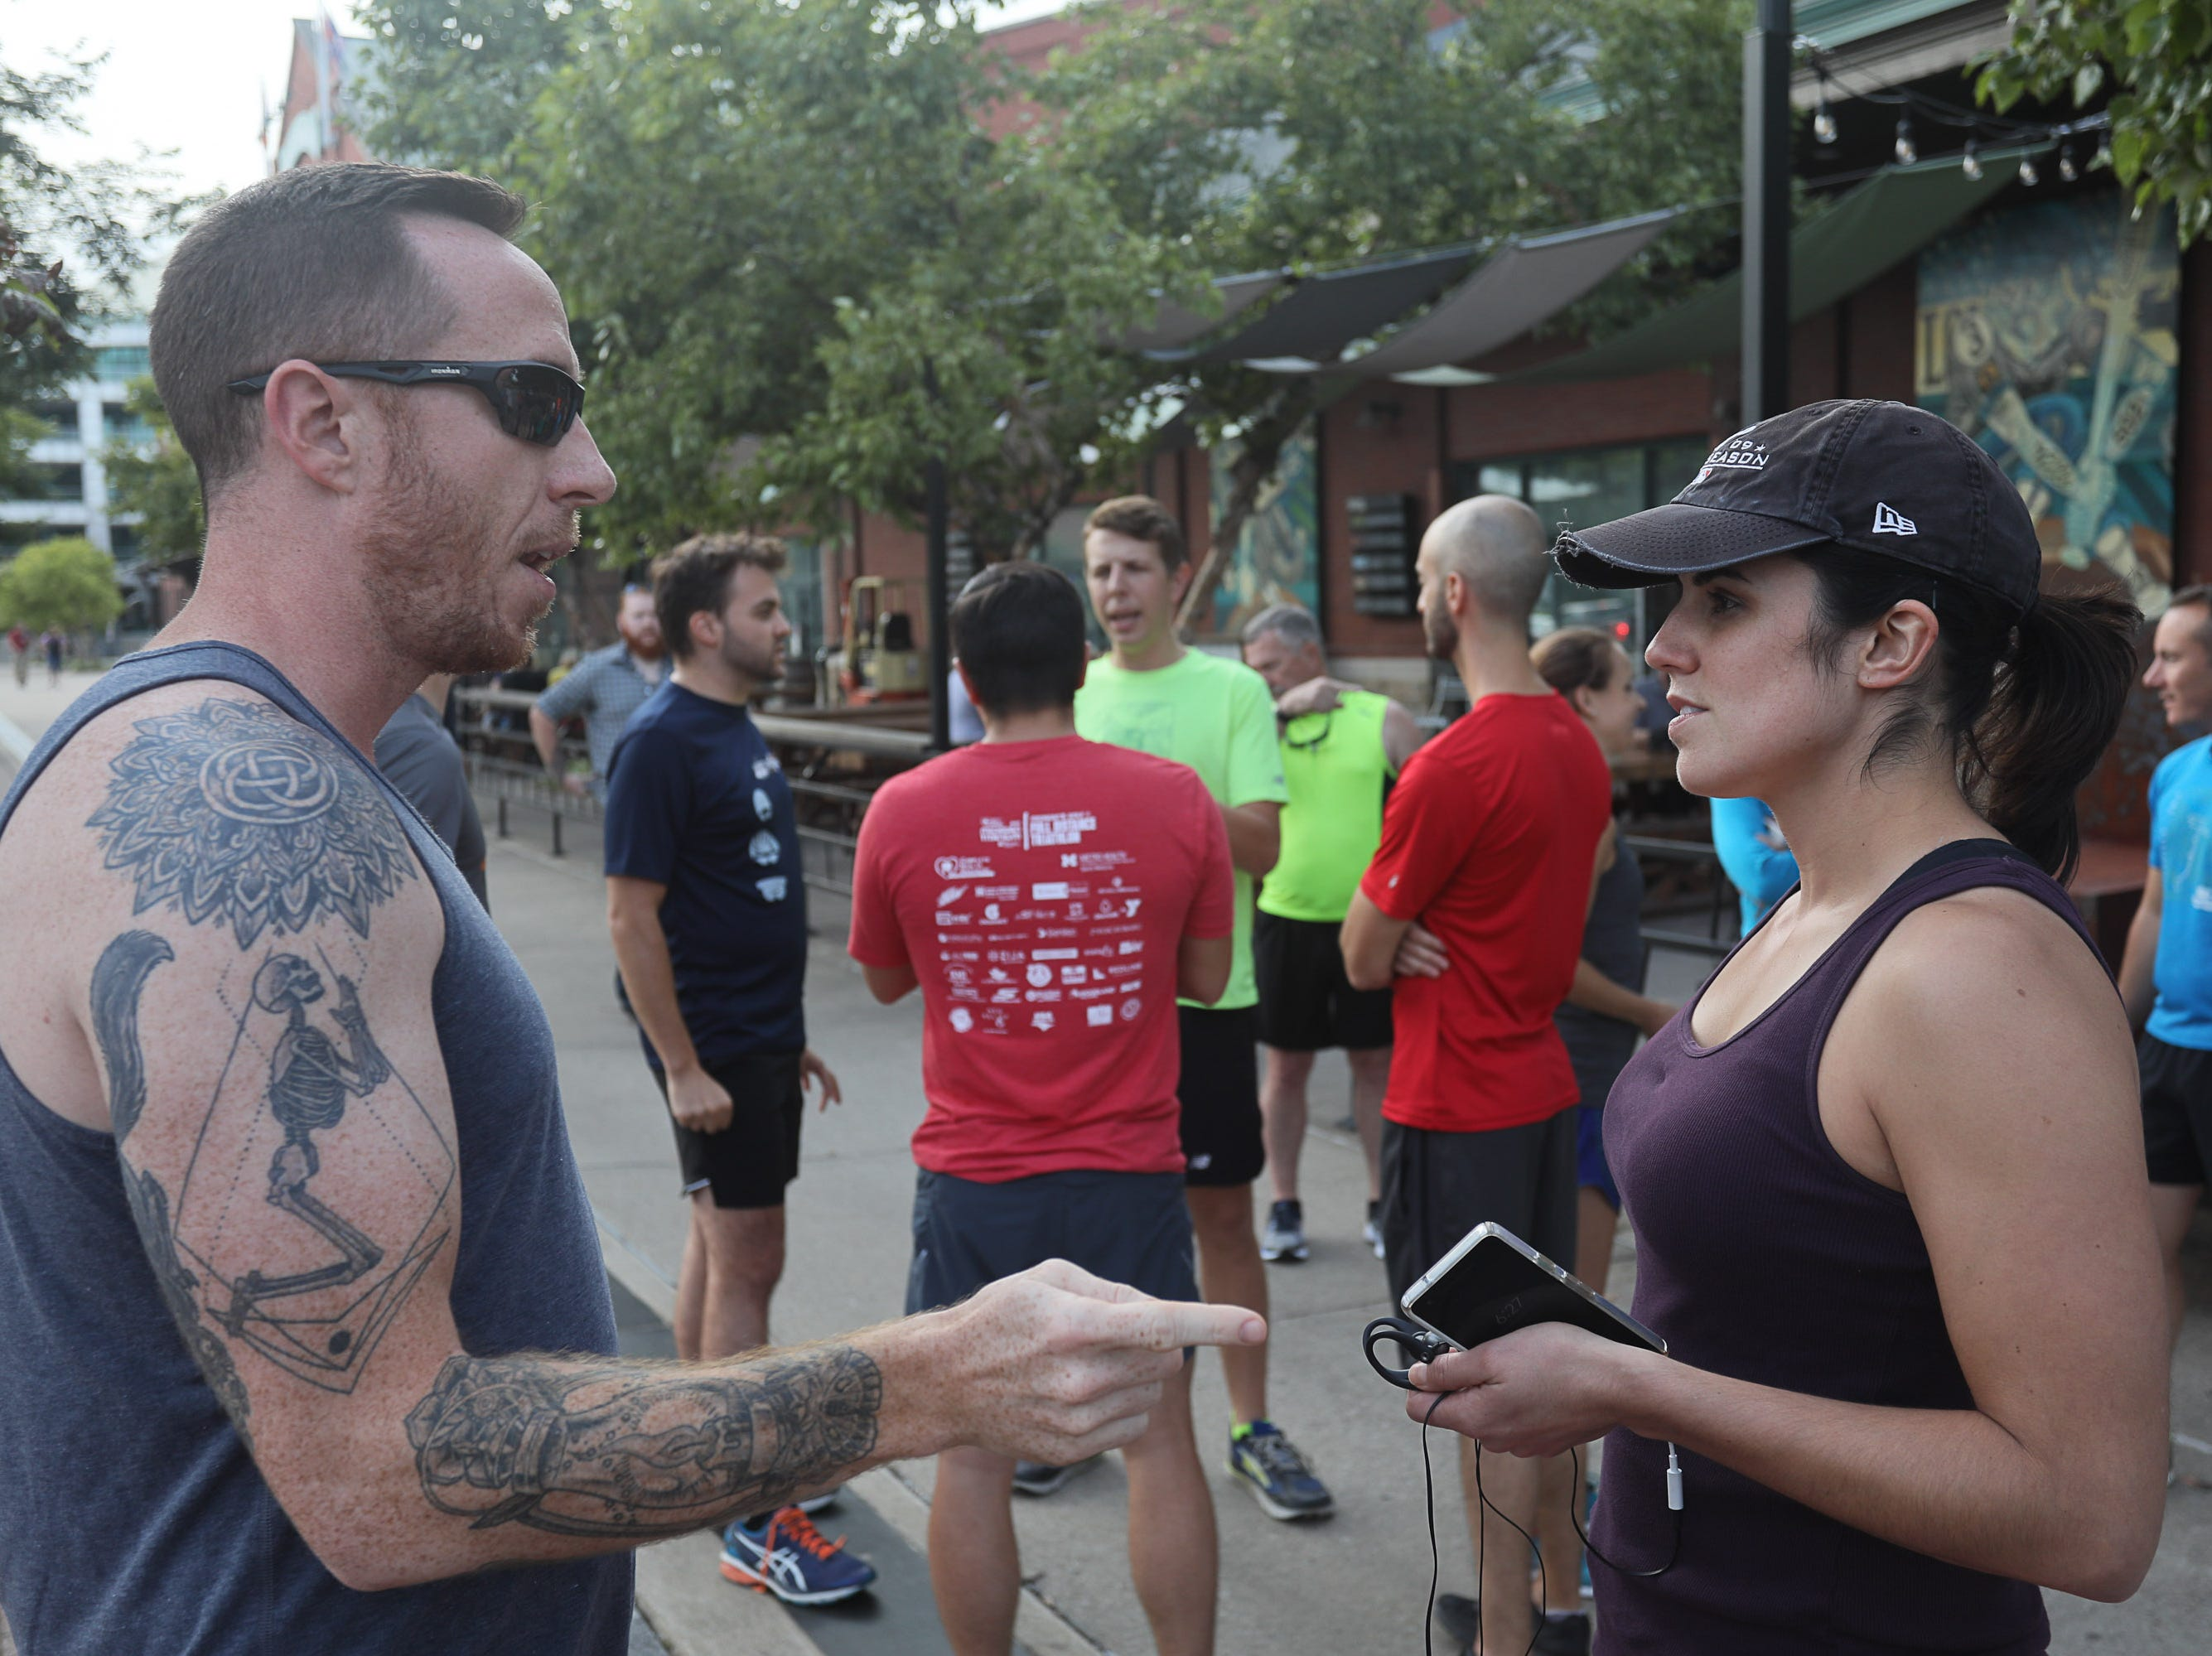 Dan Heath and Lisa Pension during a Derby City Run Club event at Against the Grain Brewery in Louisville, Ky. Sept. 12, 2018